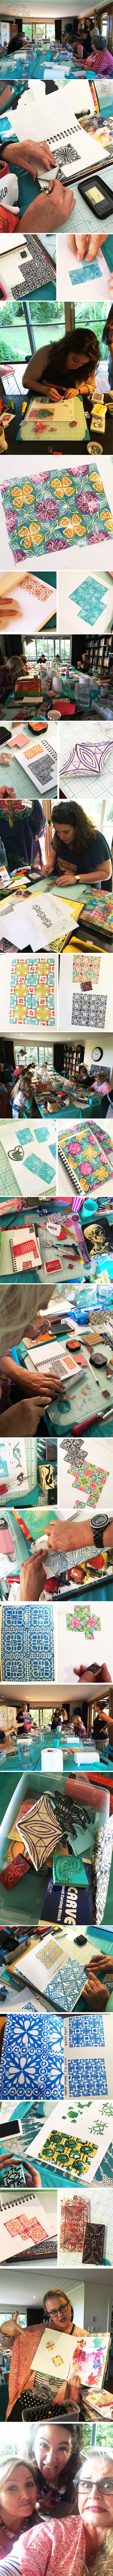 From the Balzer Designs Blog: Stamp Camp at Byron Bay